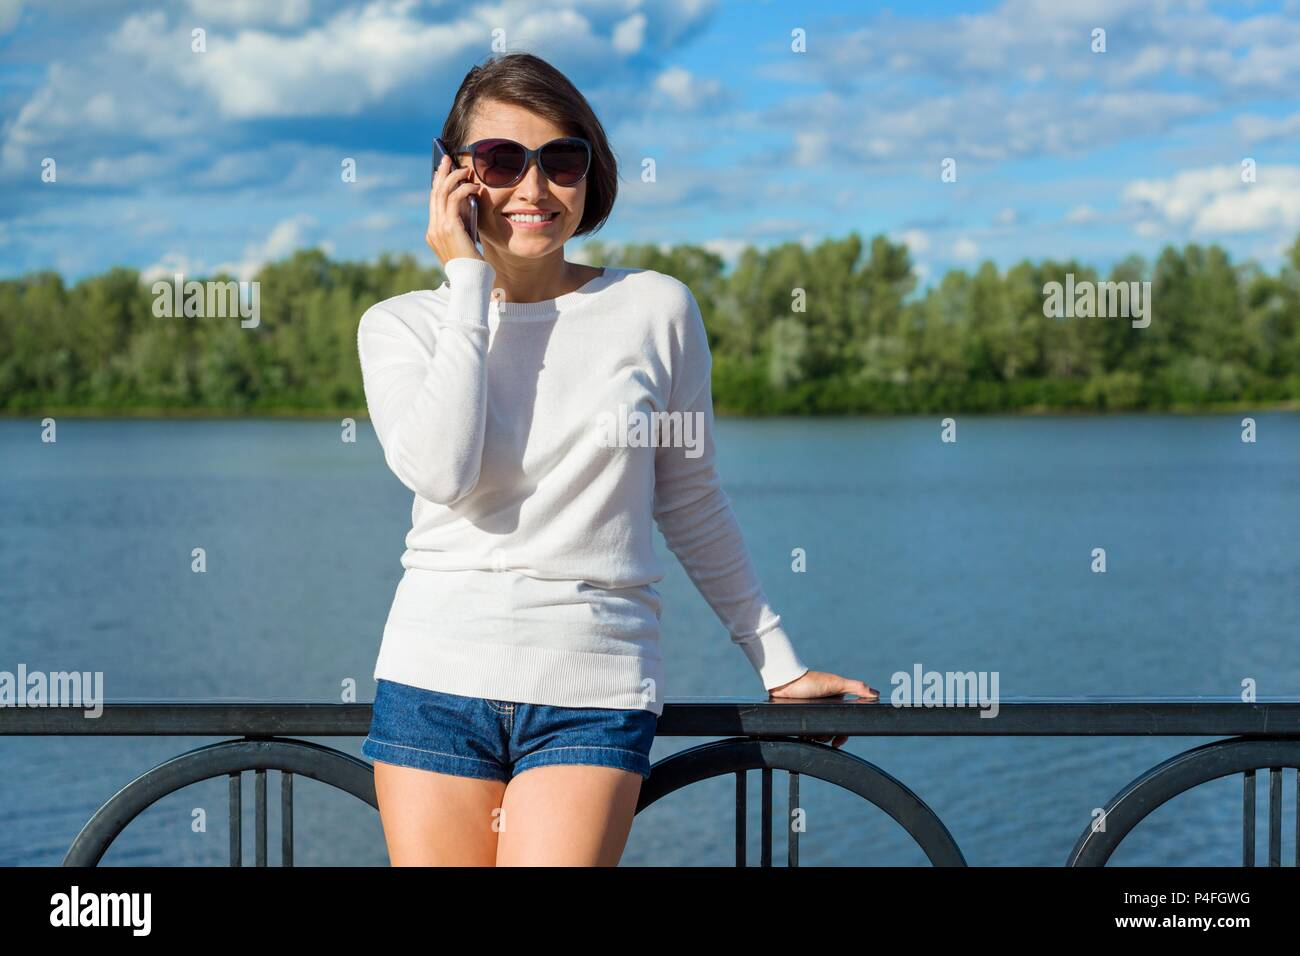 Adult beautiful smiling woman talking on the phone. Background river, sky with clouds, photo taken in summer. - Stock Image